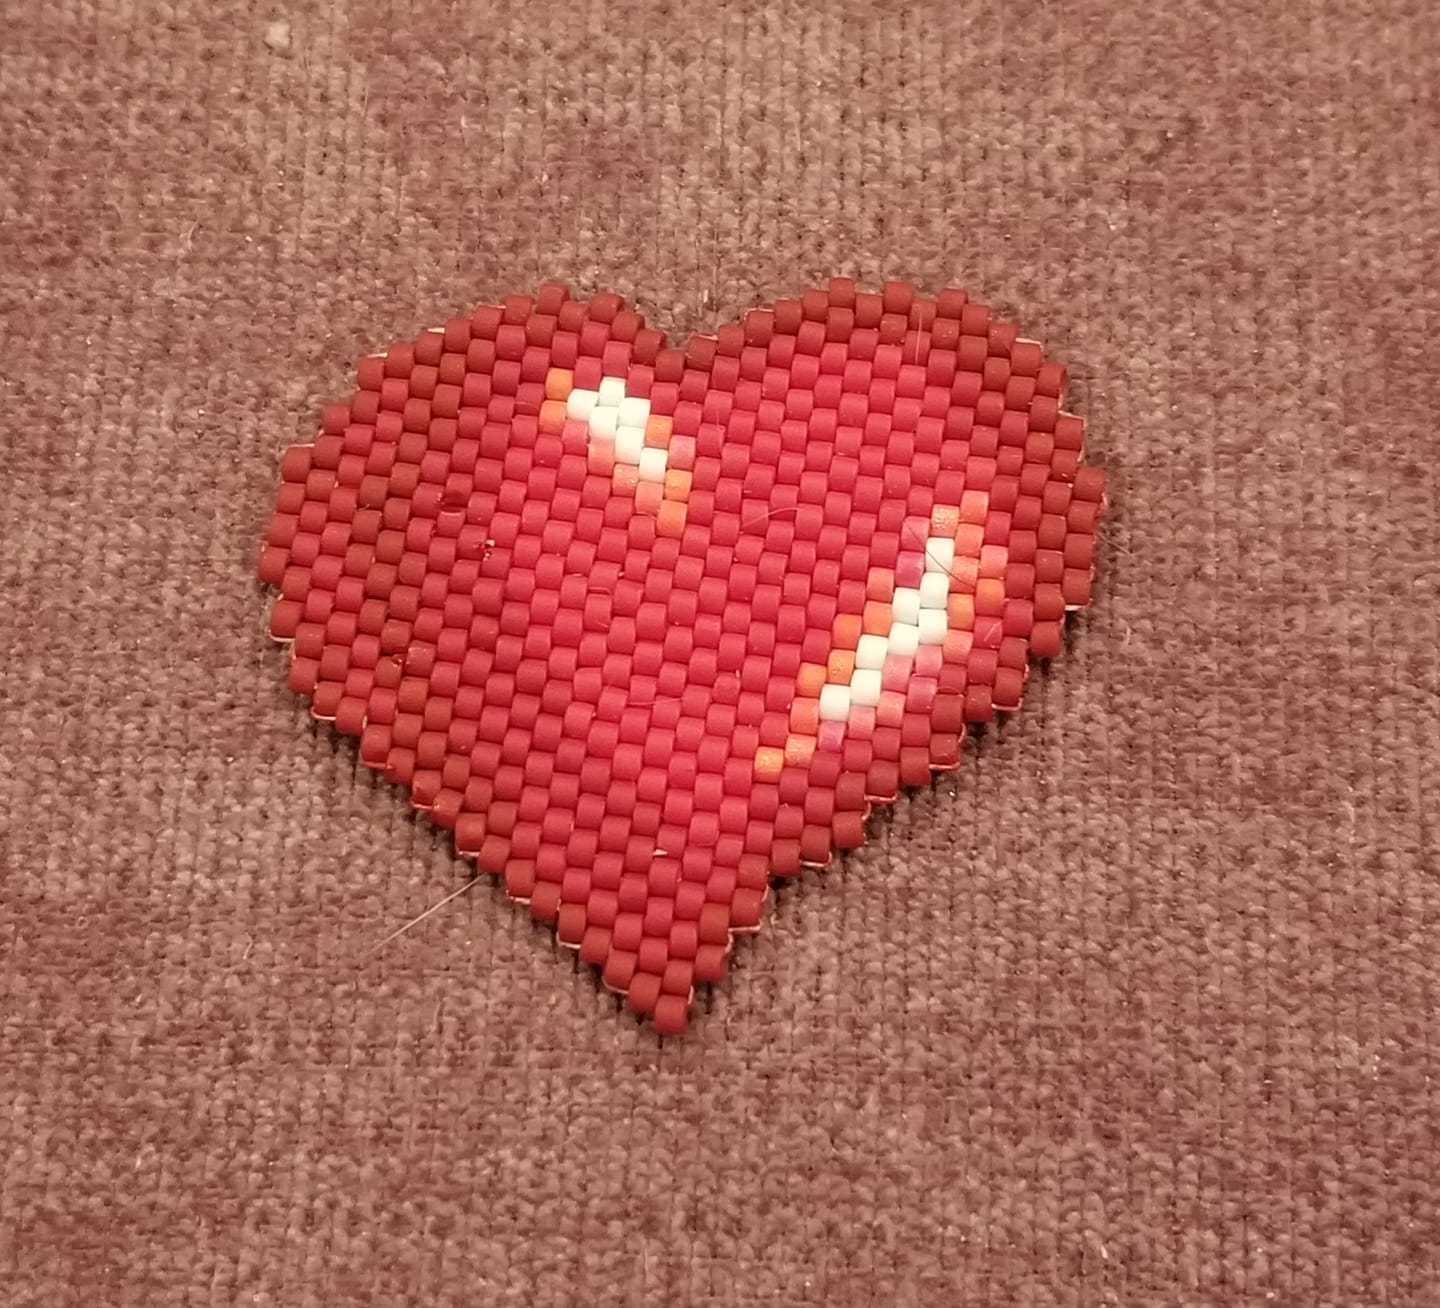 Heart design by Jeanette Carzon